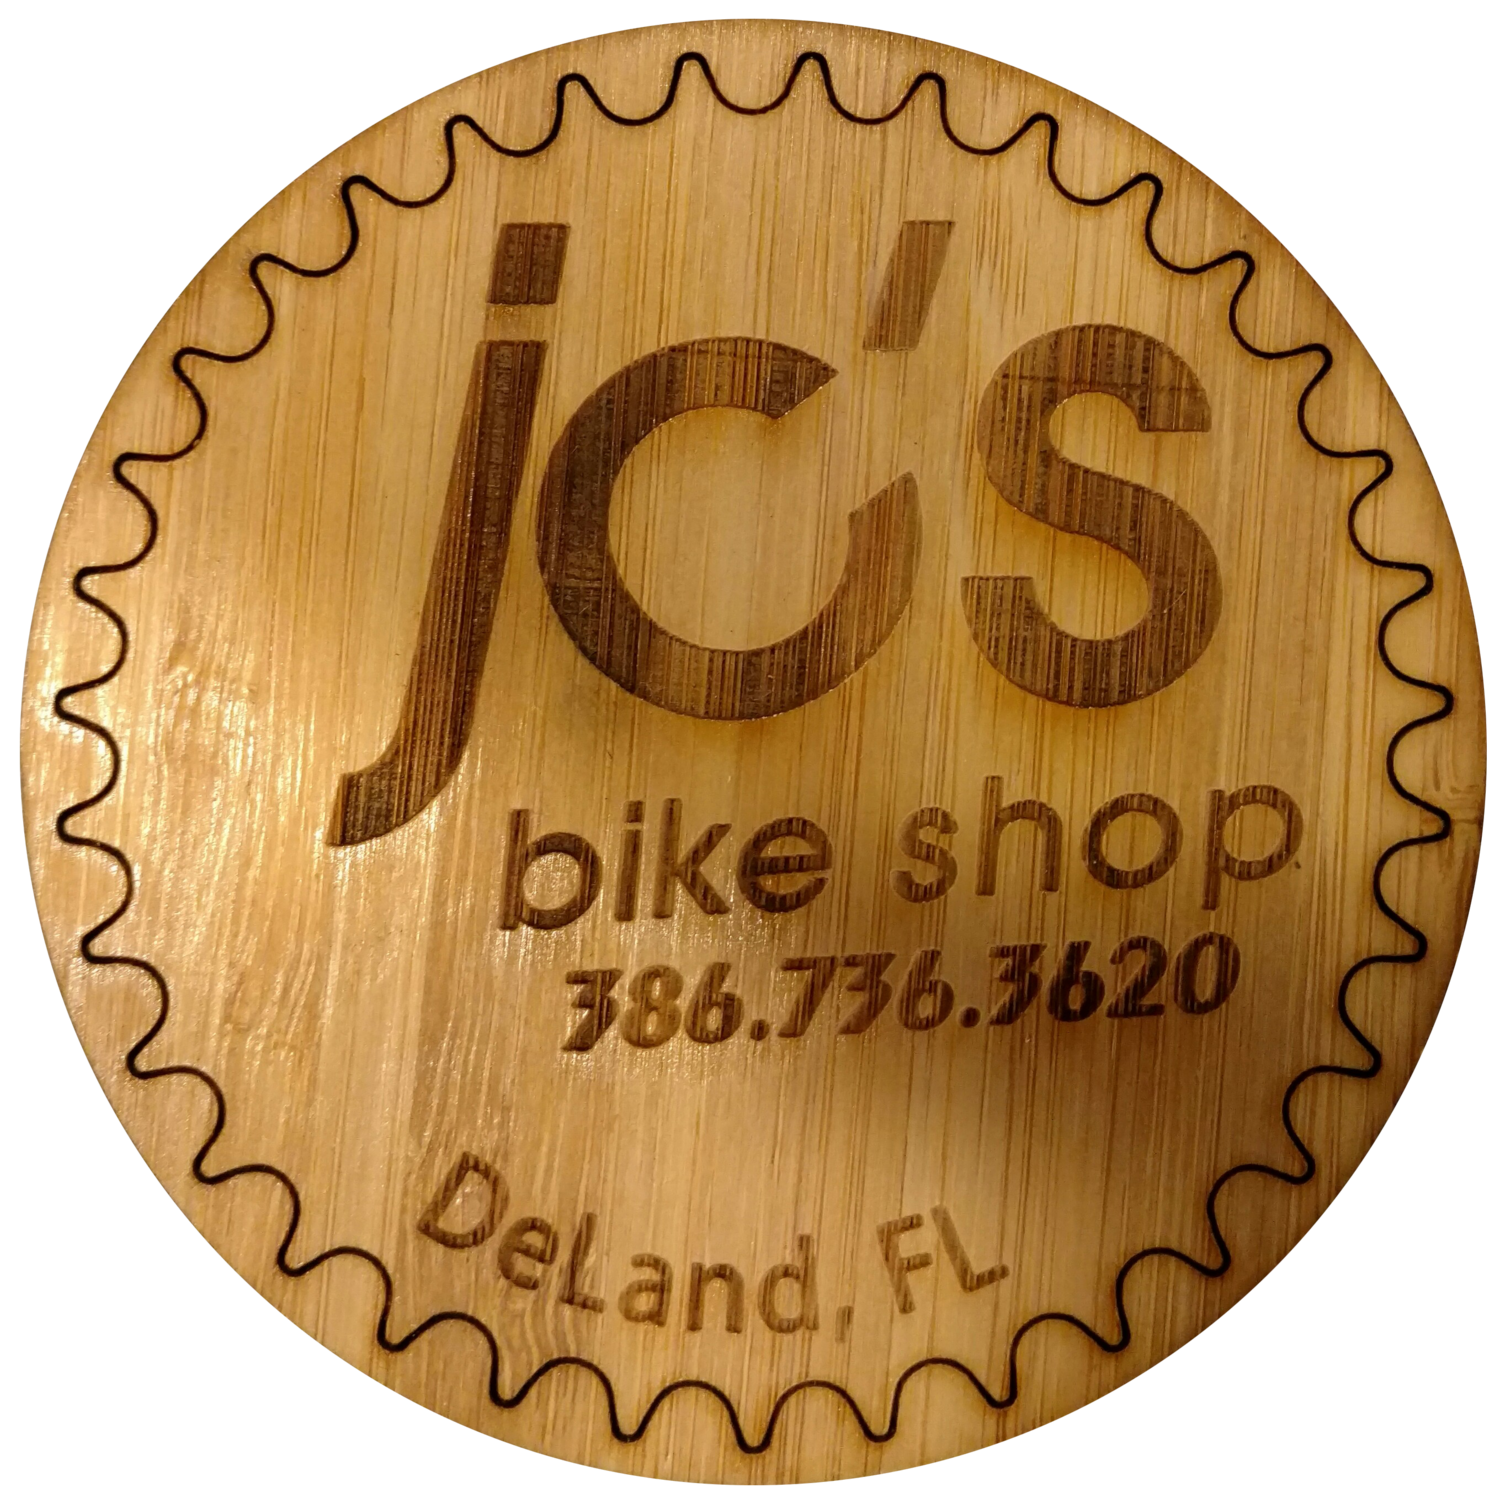 JC's Bike Shop